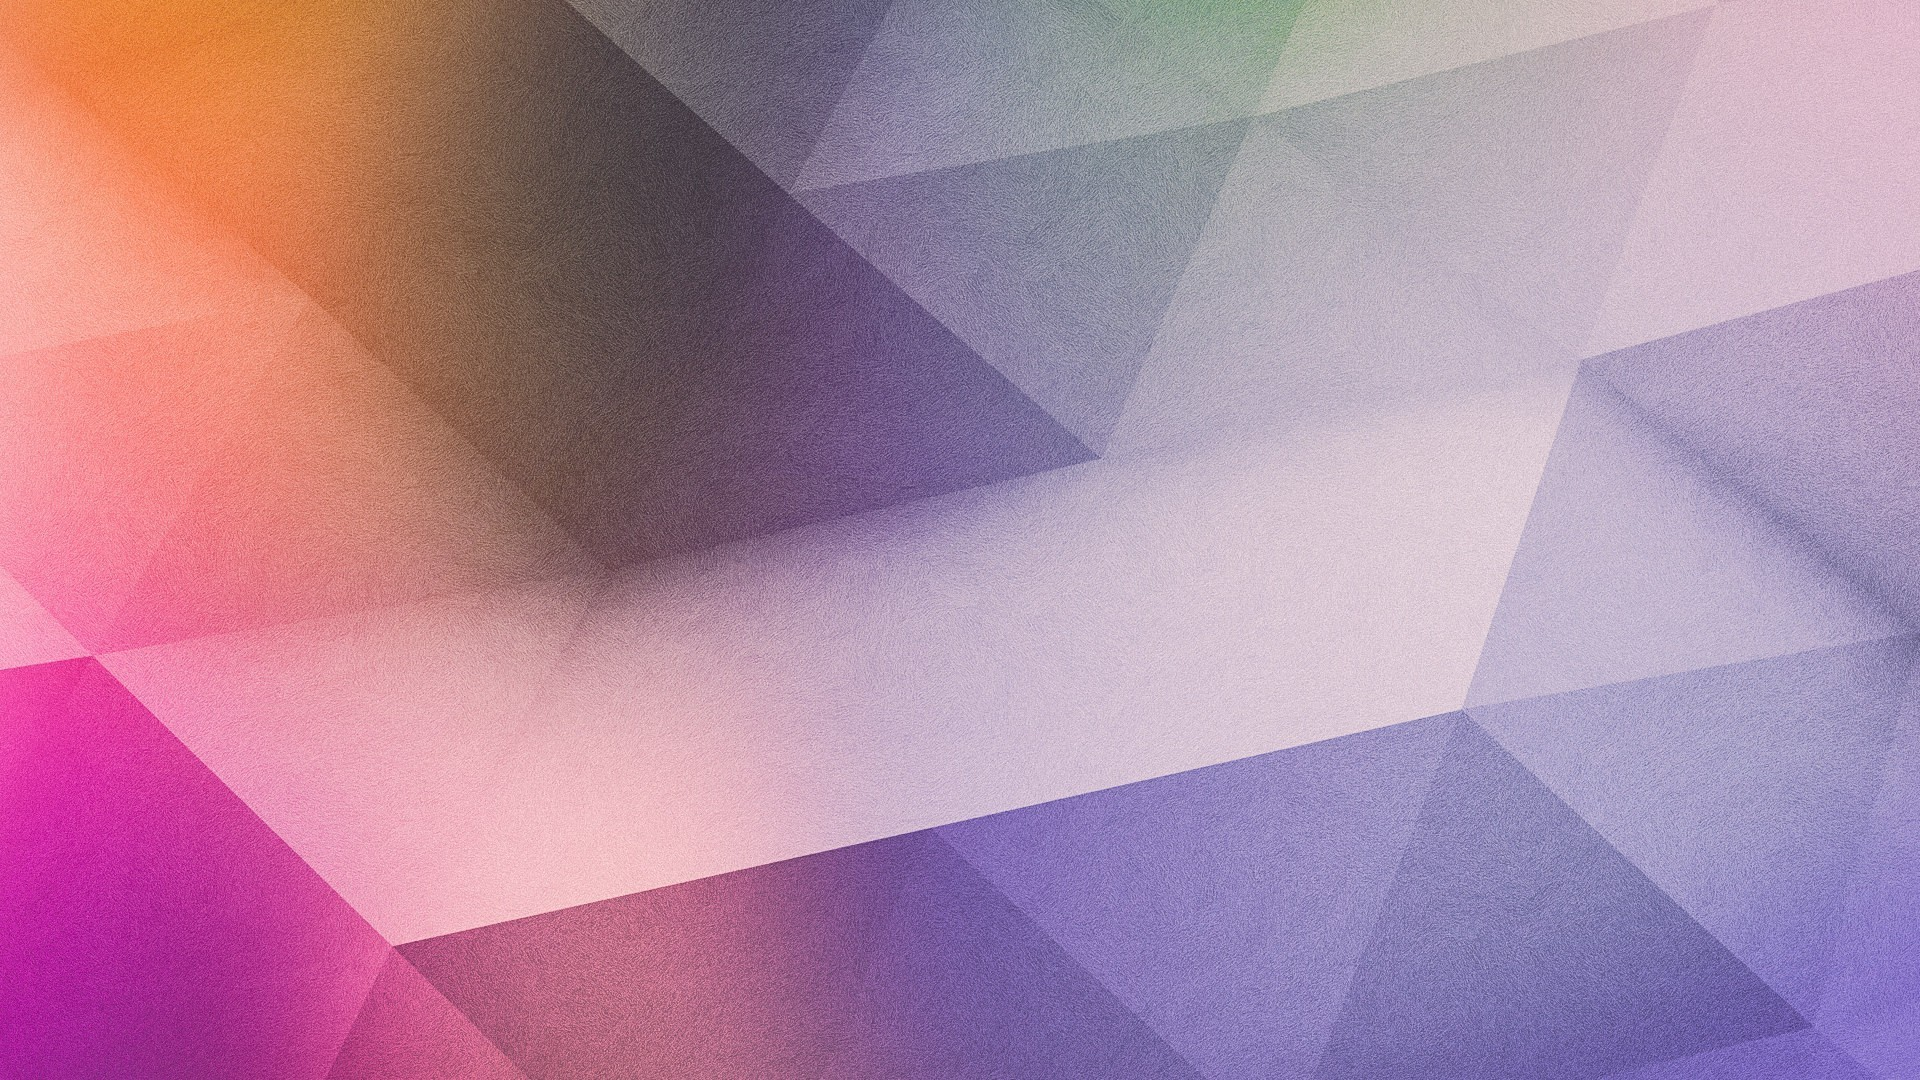 1920x1080 Purple Gradient Polygon HD Wallpaper High Definition Wallpaper